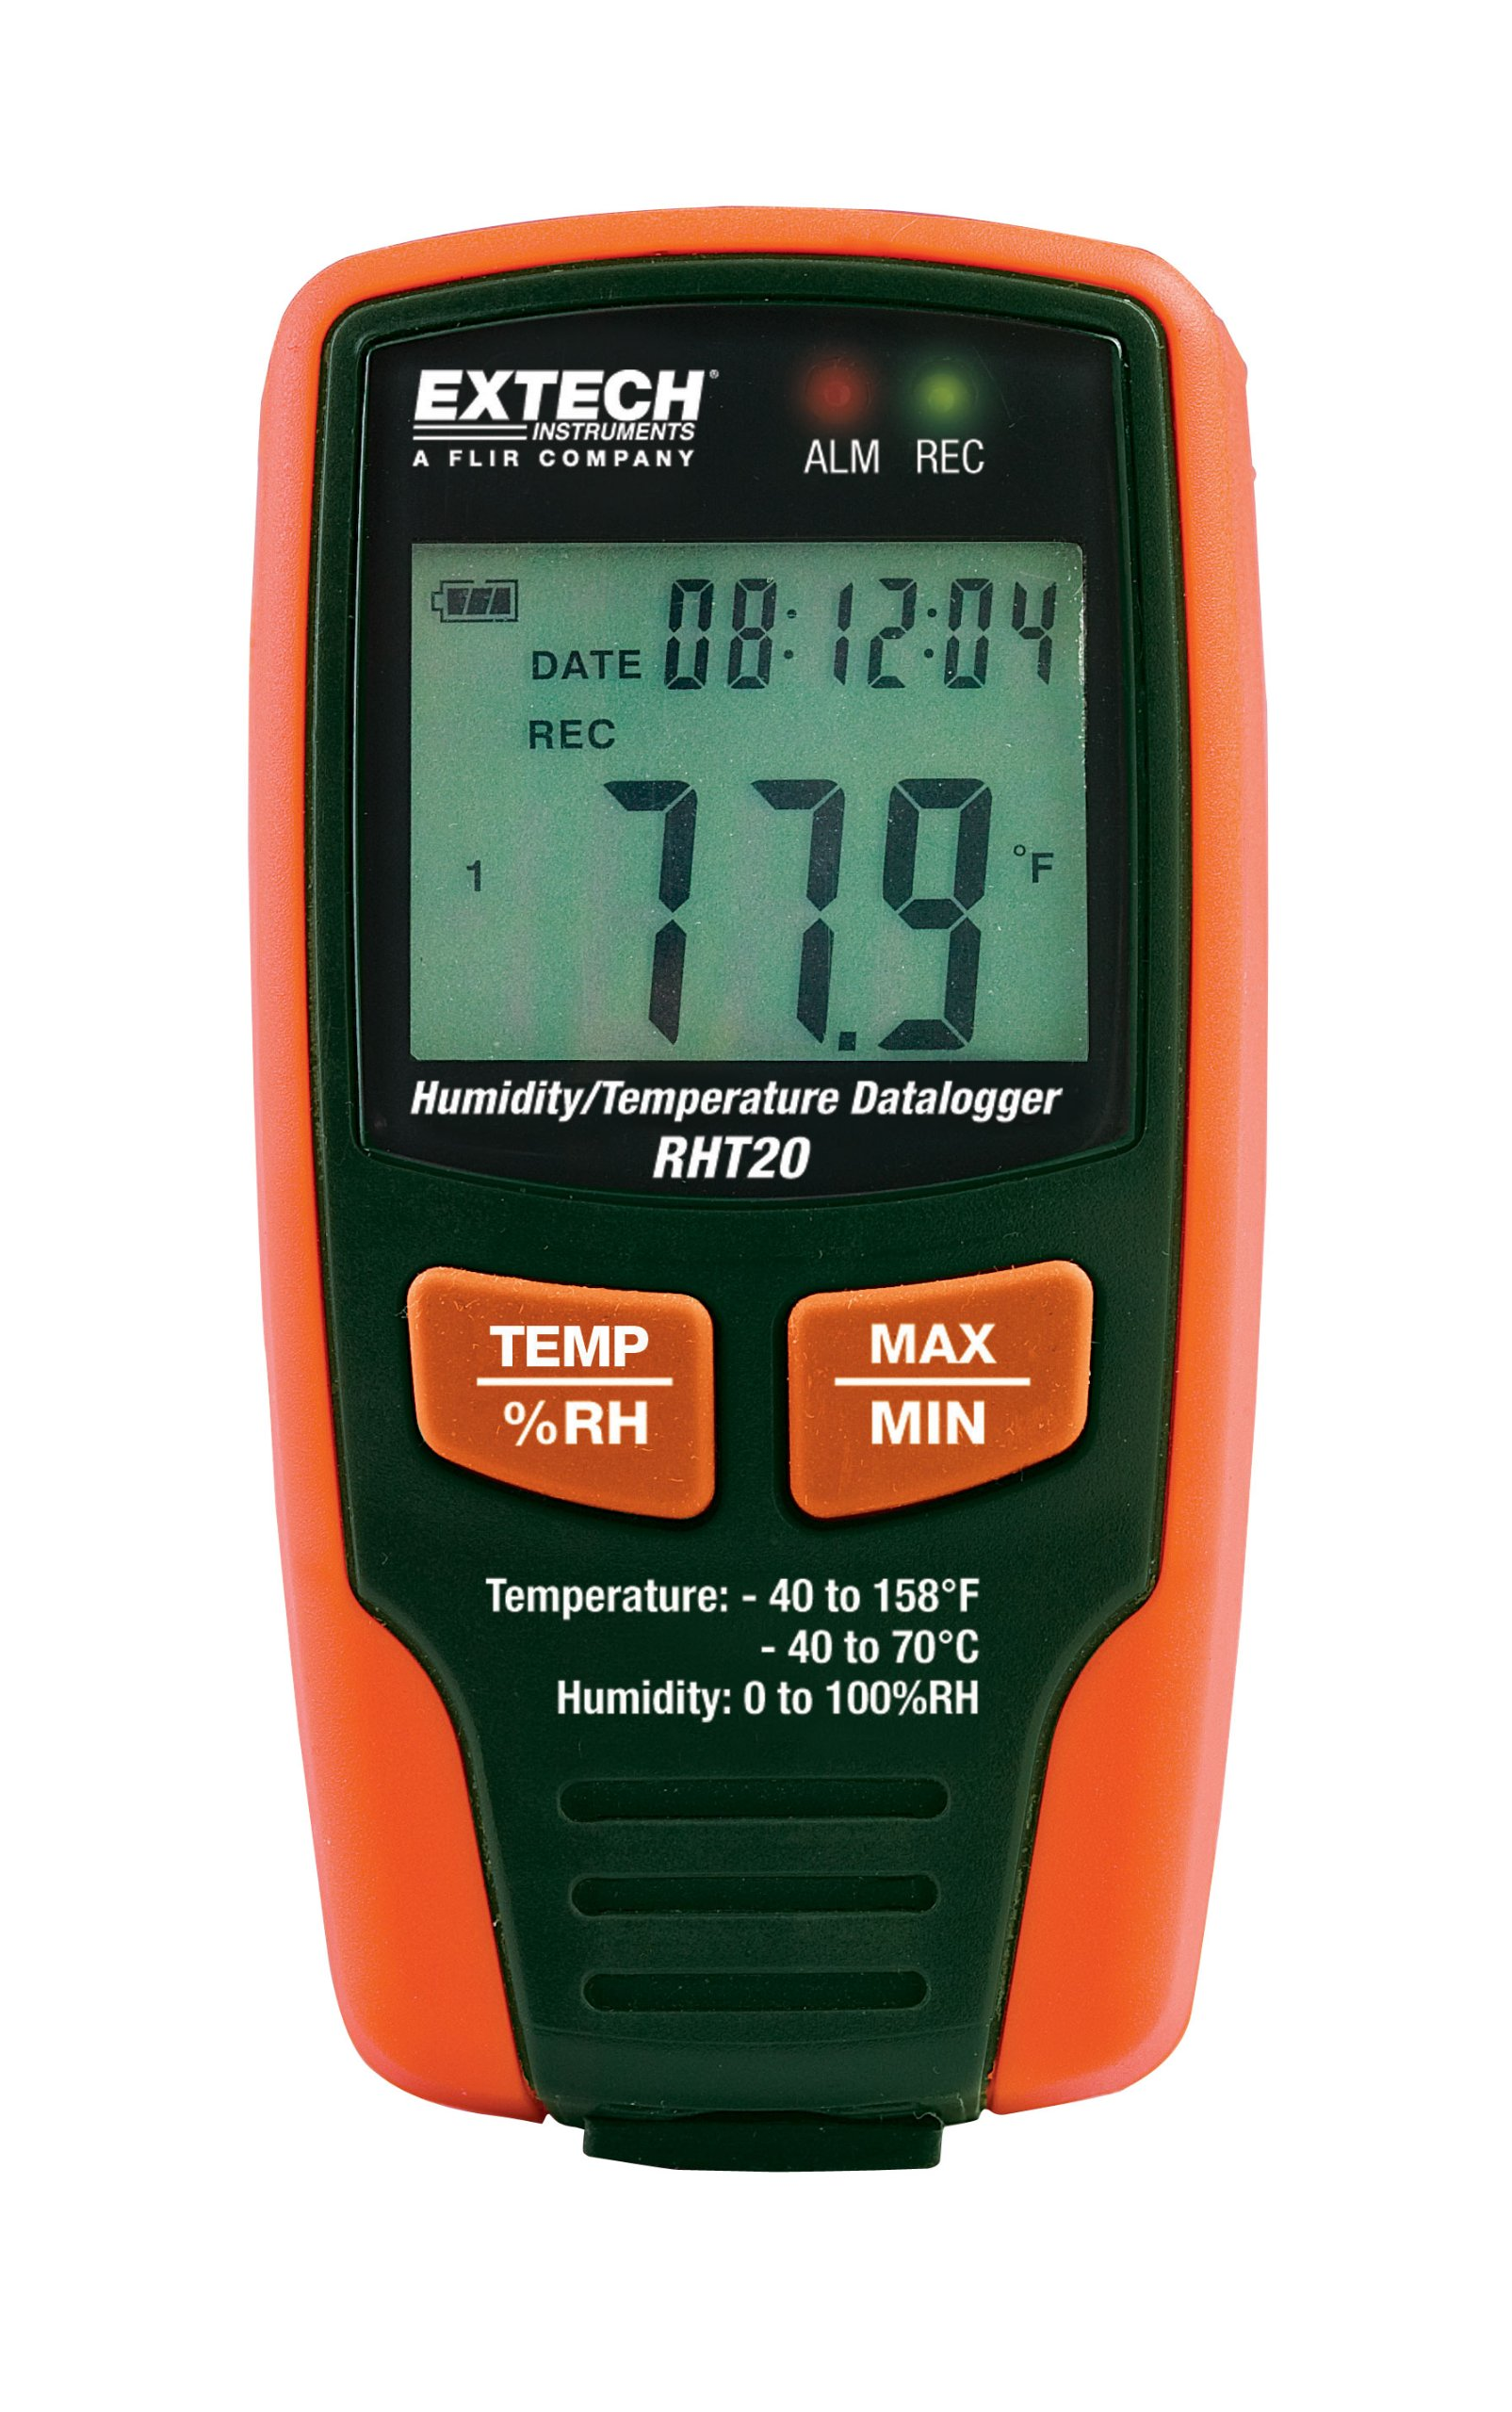 Extech RHT20 Humidity and Temperature Datalogger by Extech